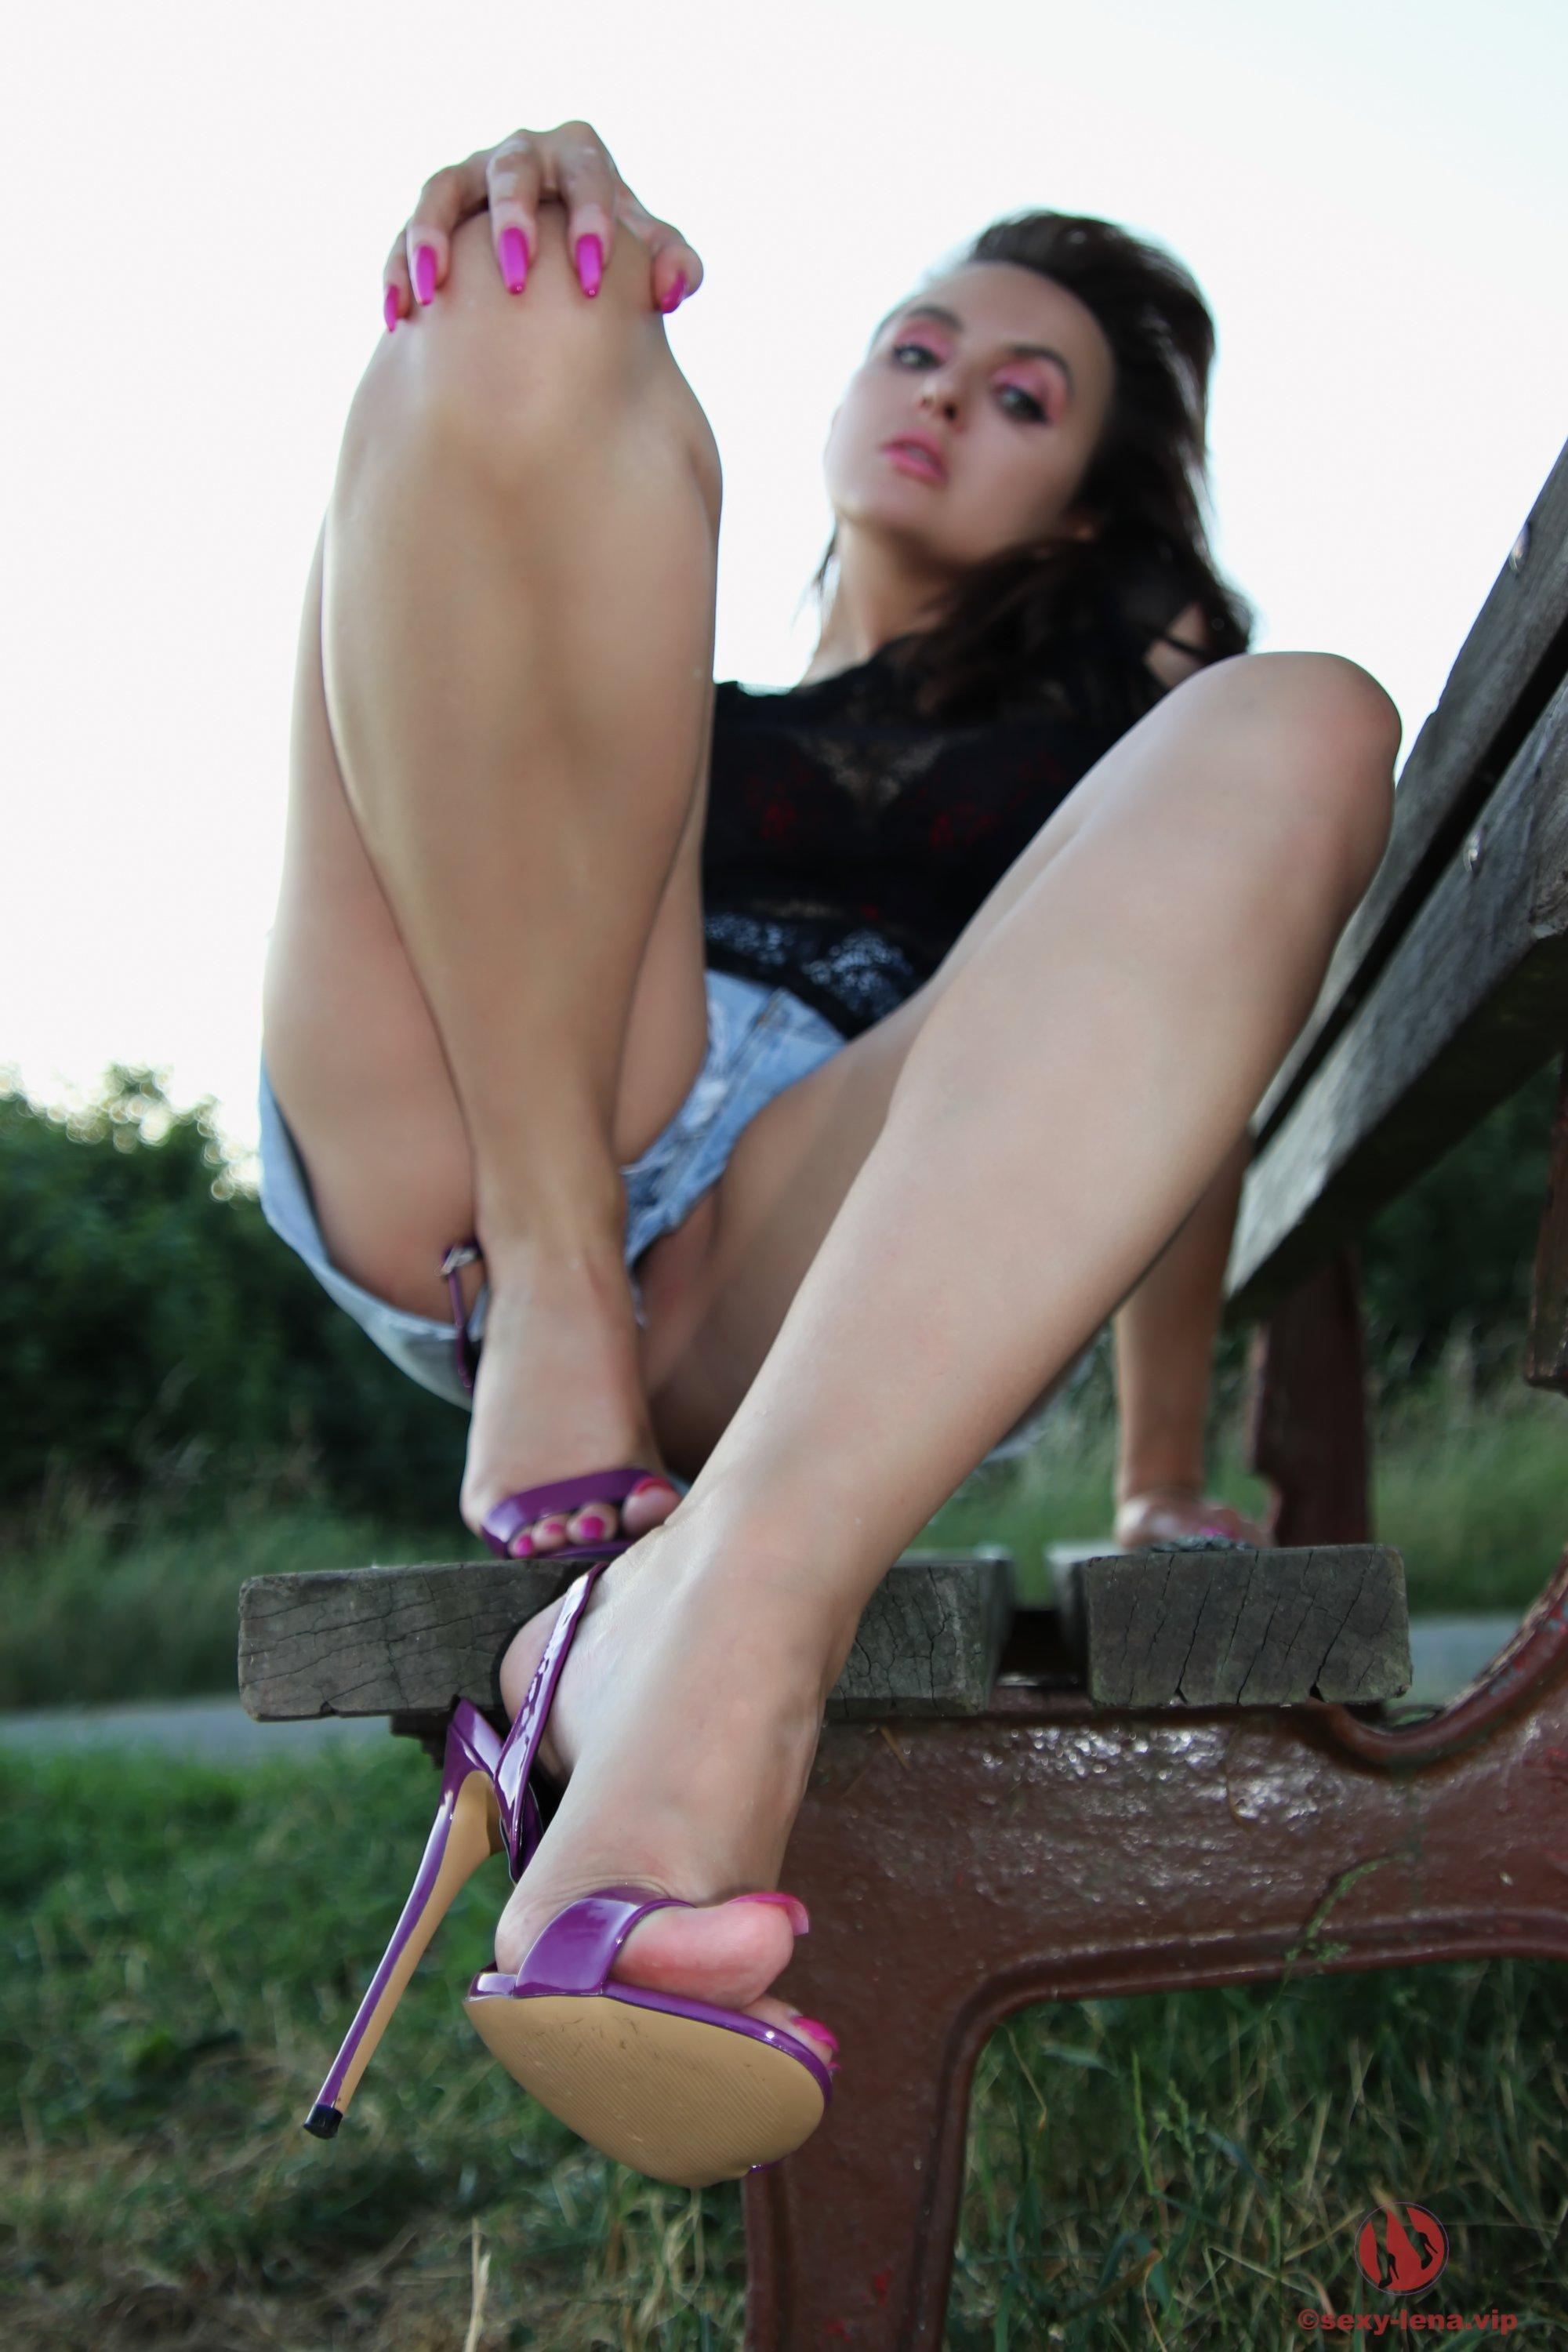 Sexy Lena Shows Legs And Feet On Park Bench  Coed Cherry-6978